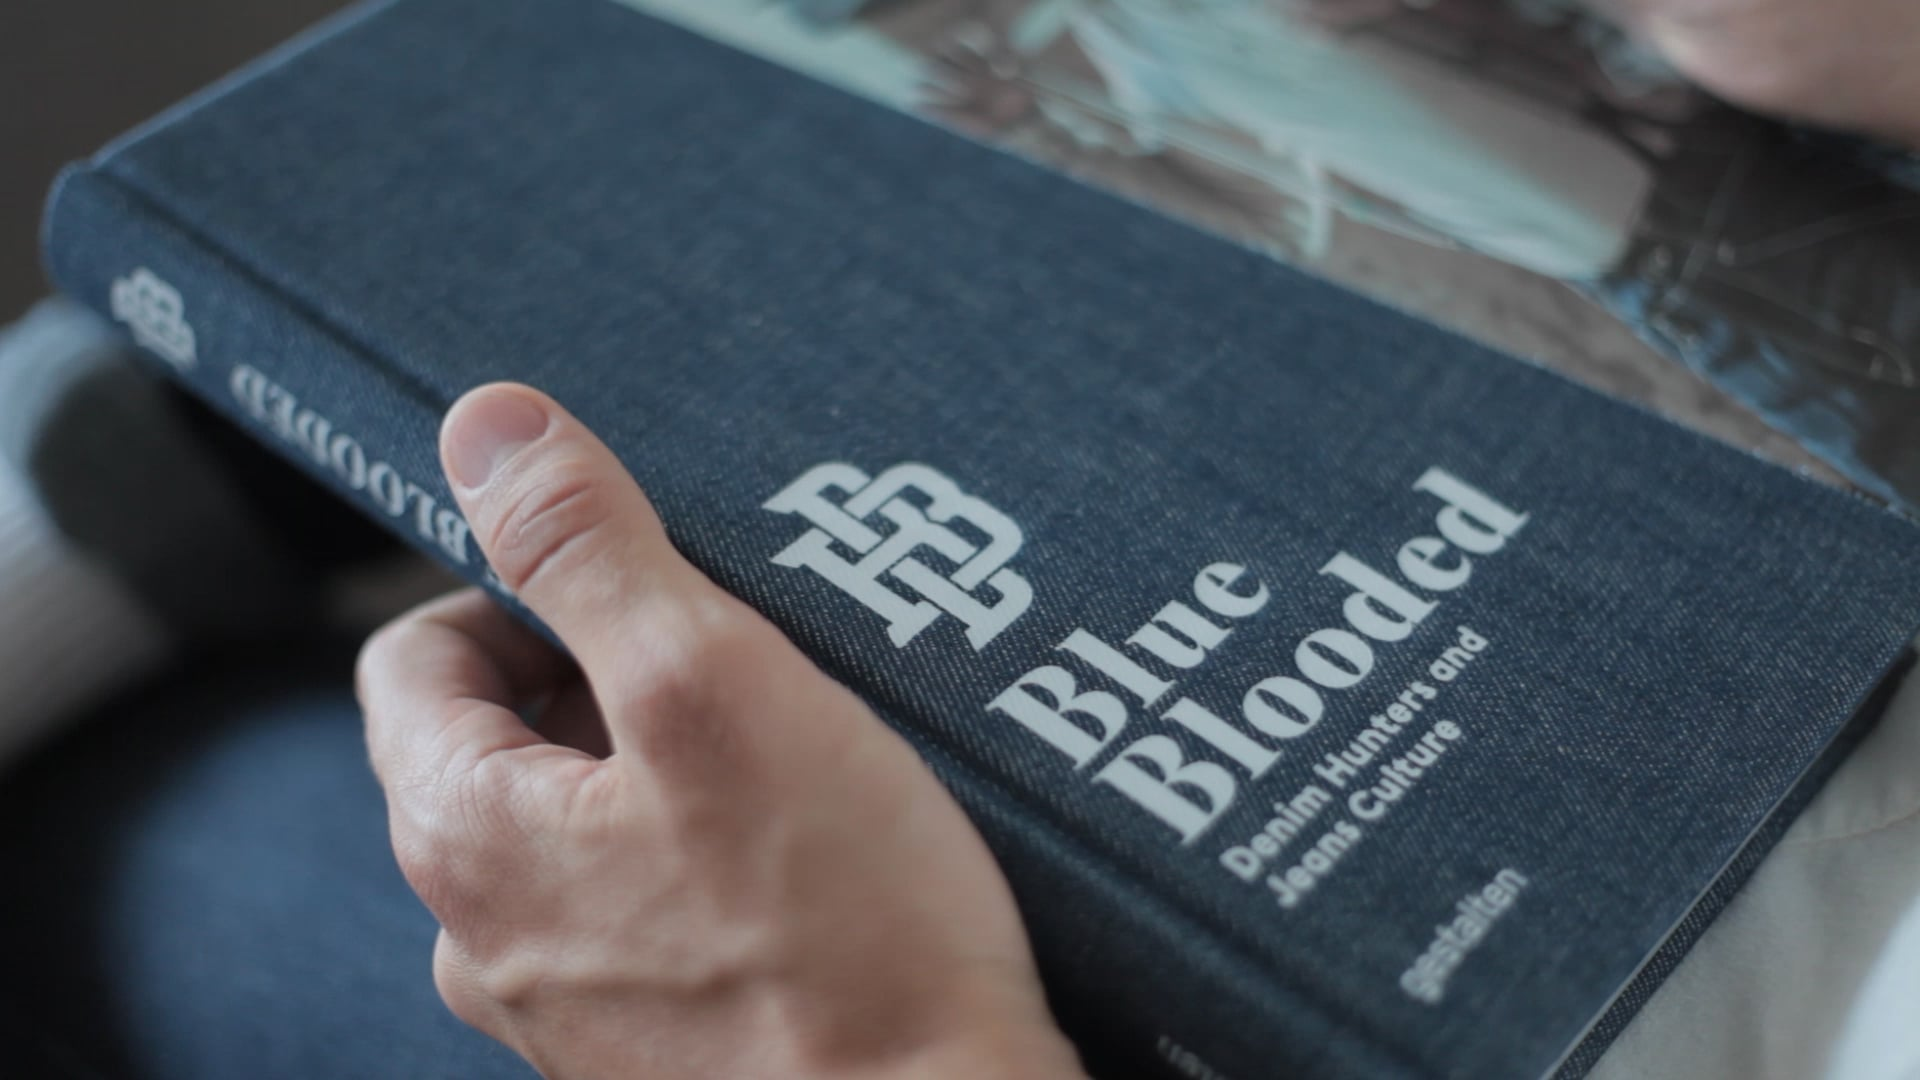 Commercial: Blue Blooded